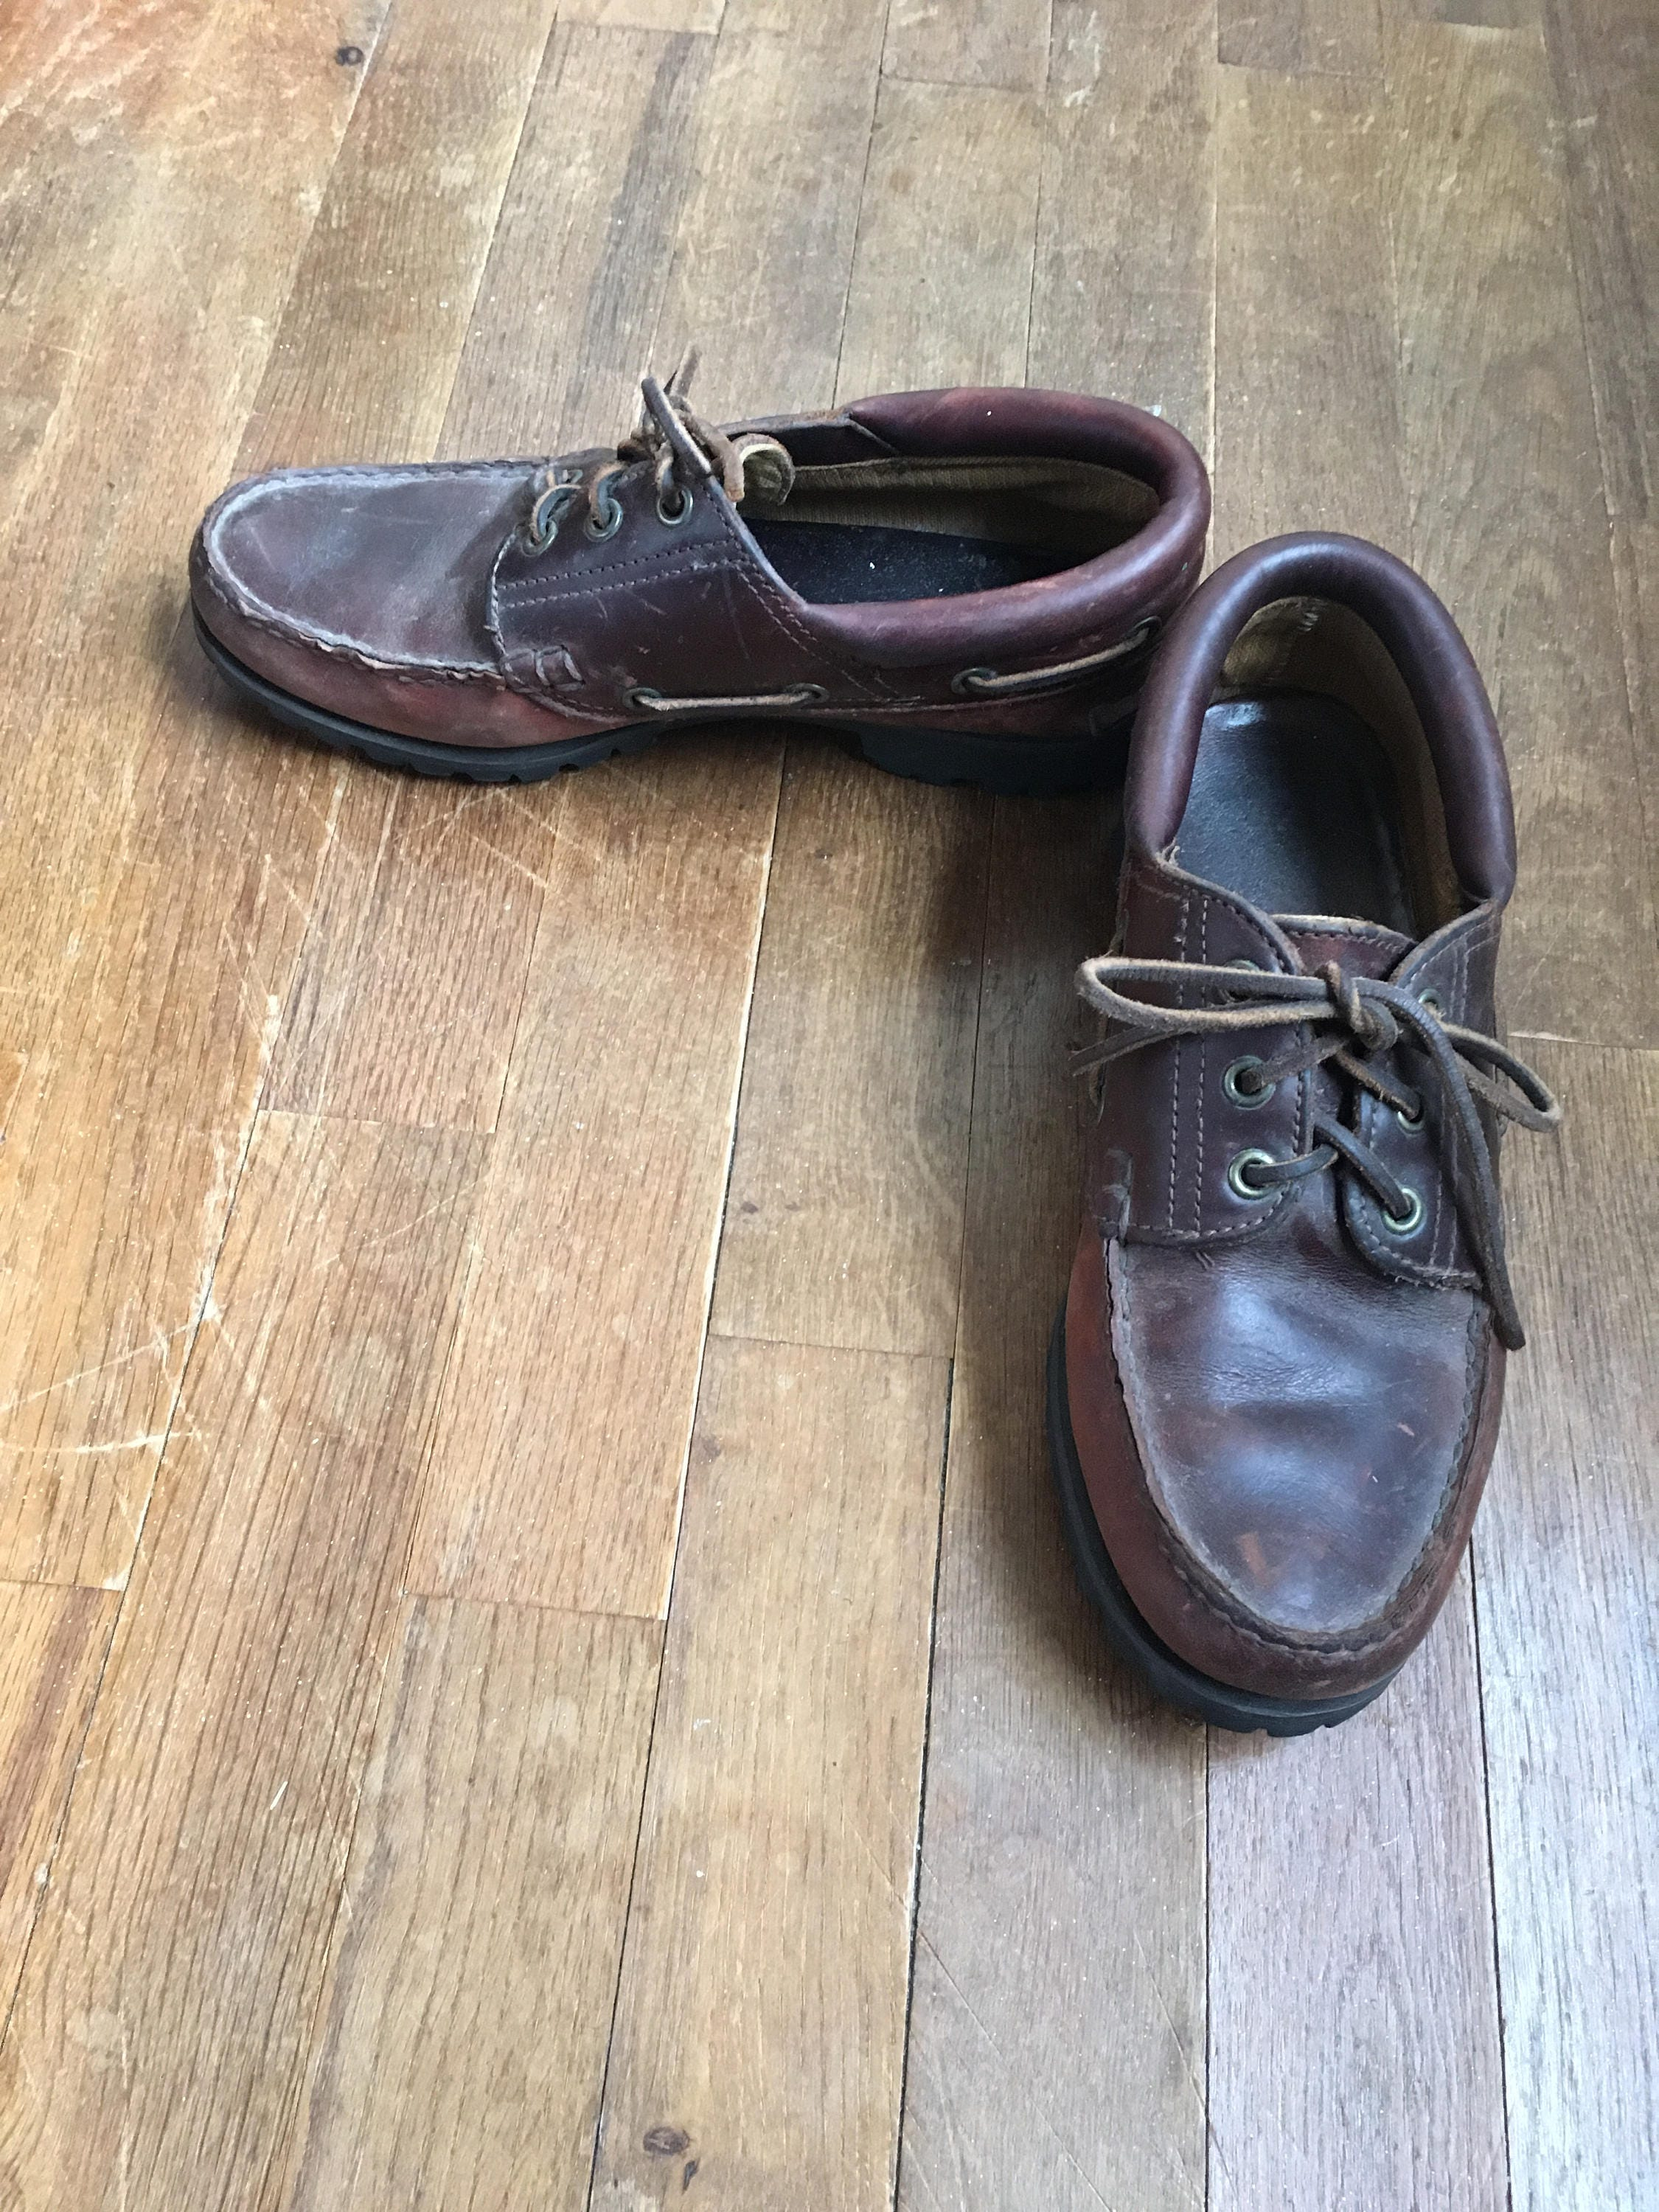 7293a9fea3bd5 vintage 90s timberland 3 eyelet classic lug moc toe moccasins mens shoe  size 6 M made in usa